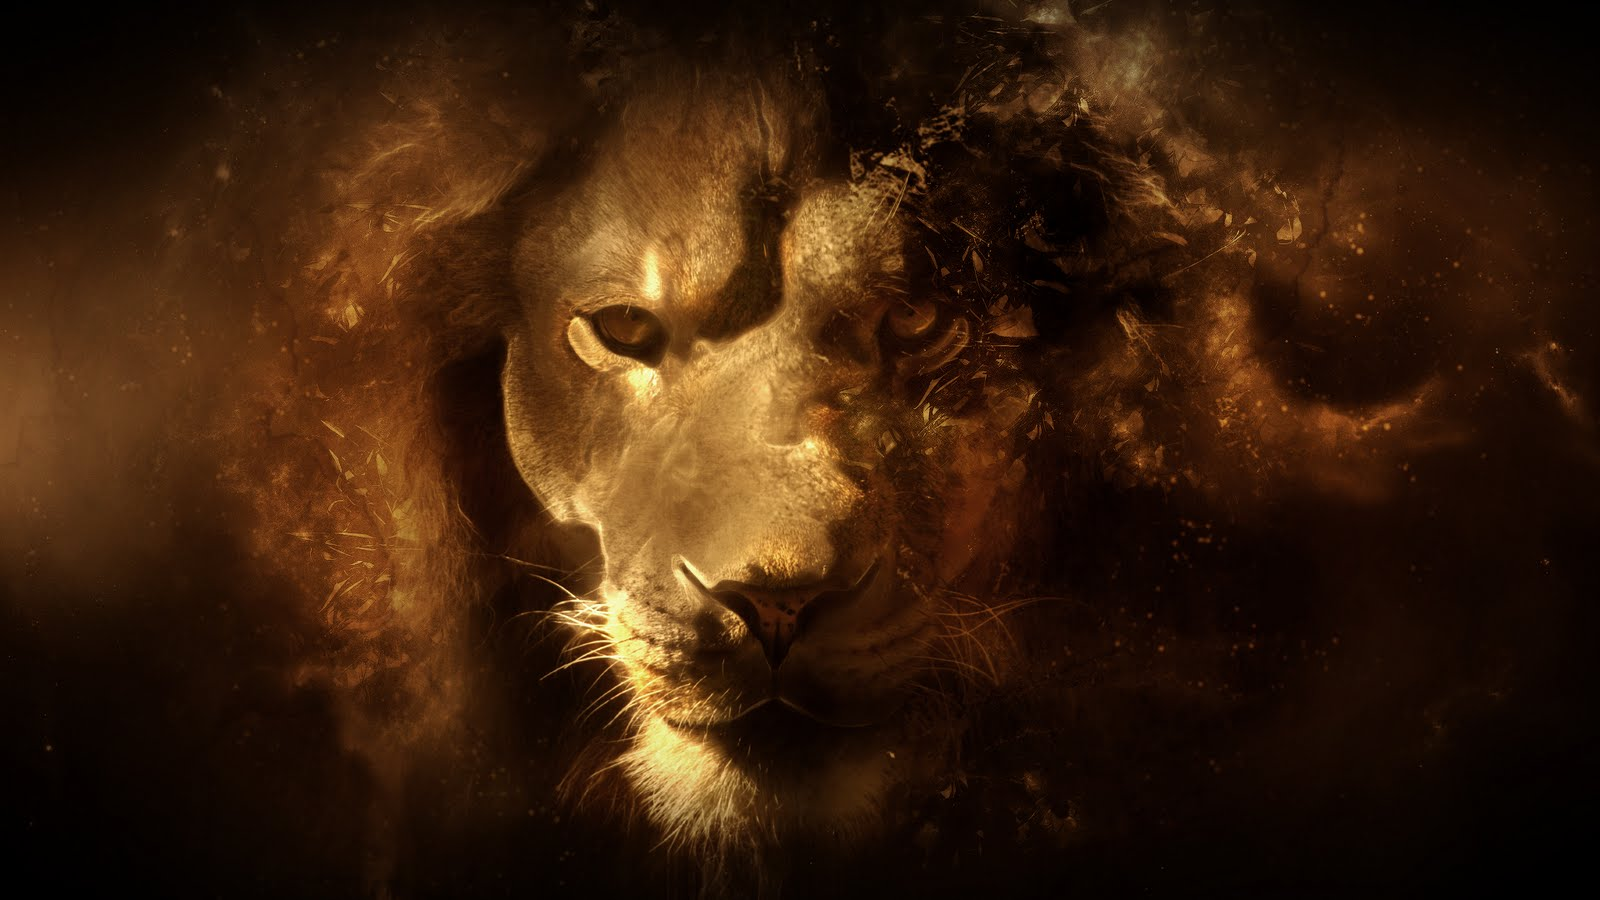 Lion HD Wallpaper 1600x900